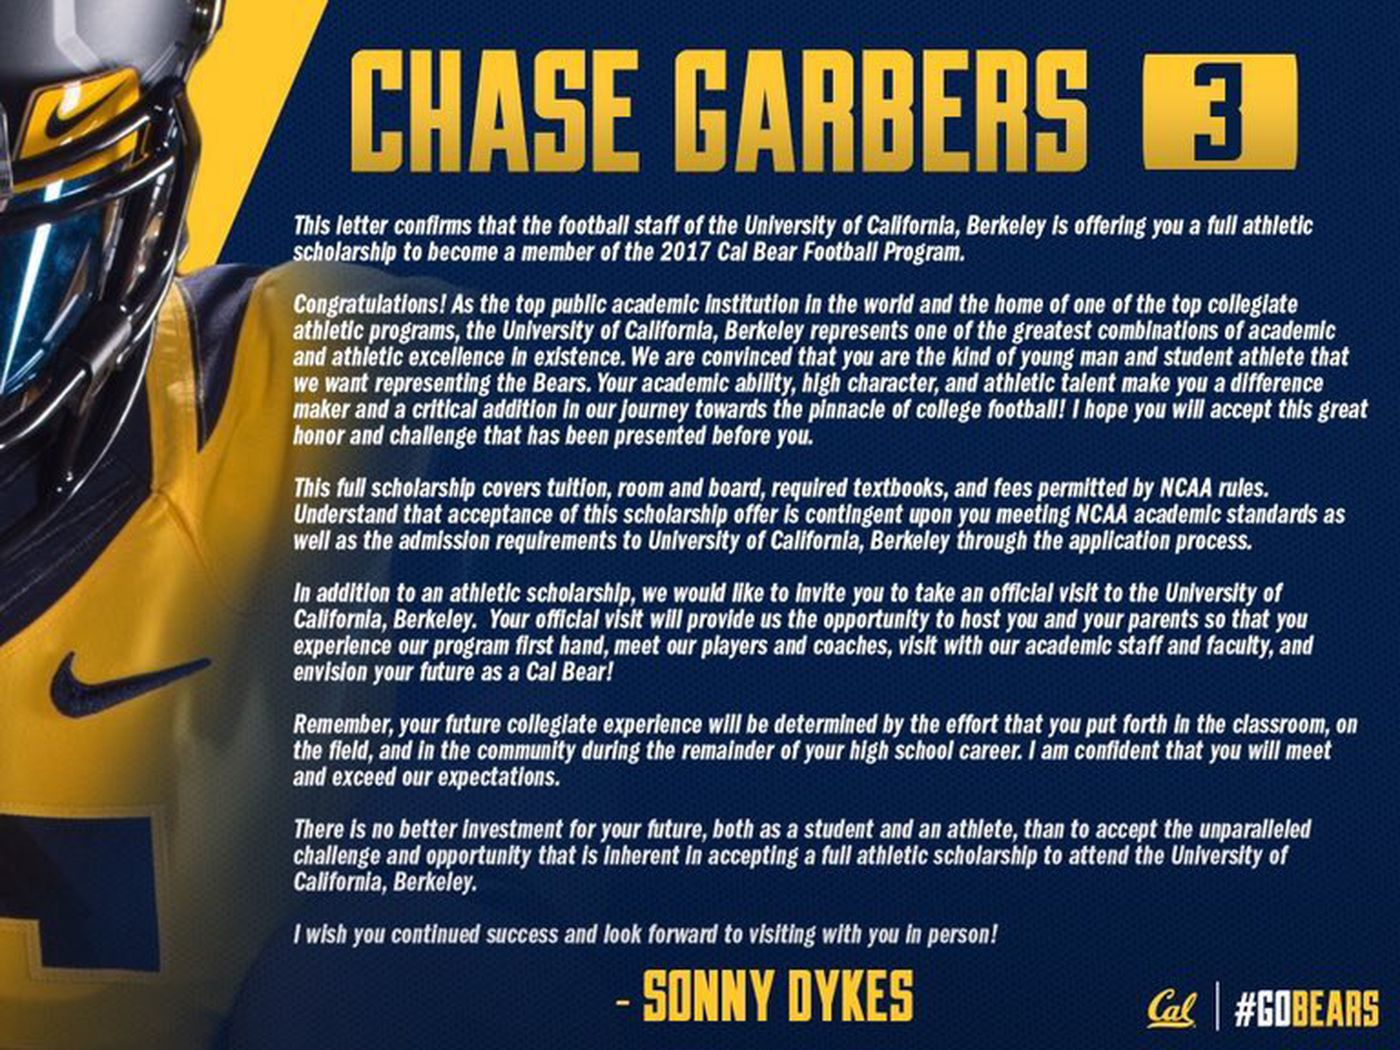 cal football recruiting has a new twitter and official scholarship